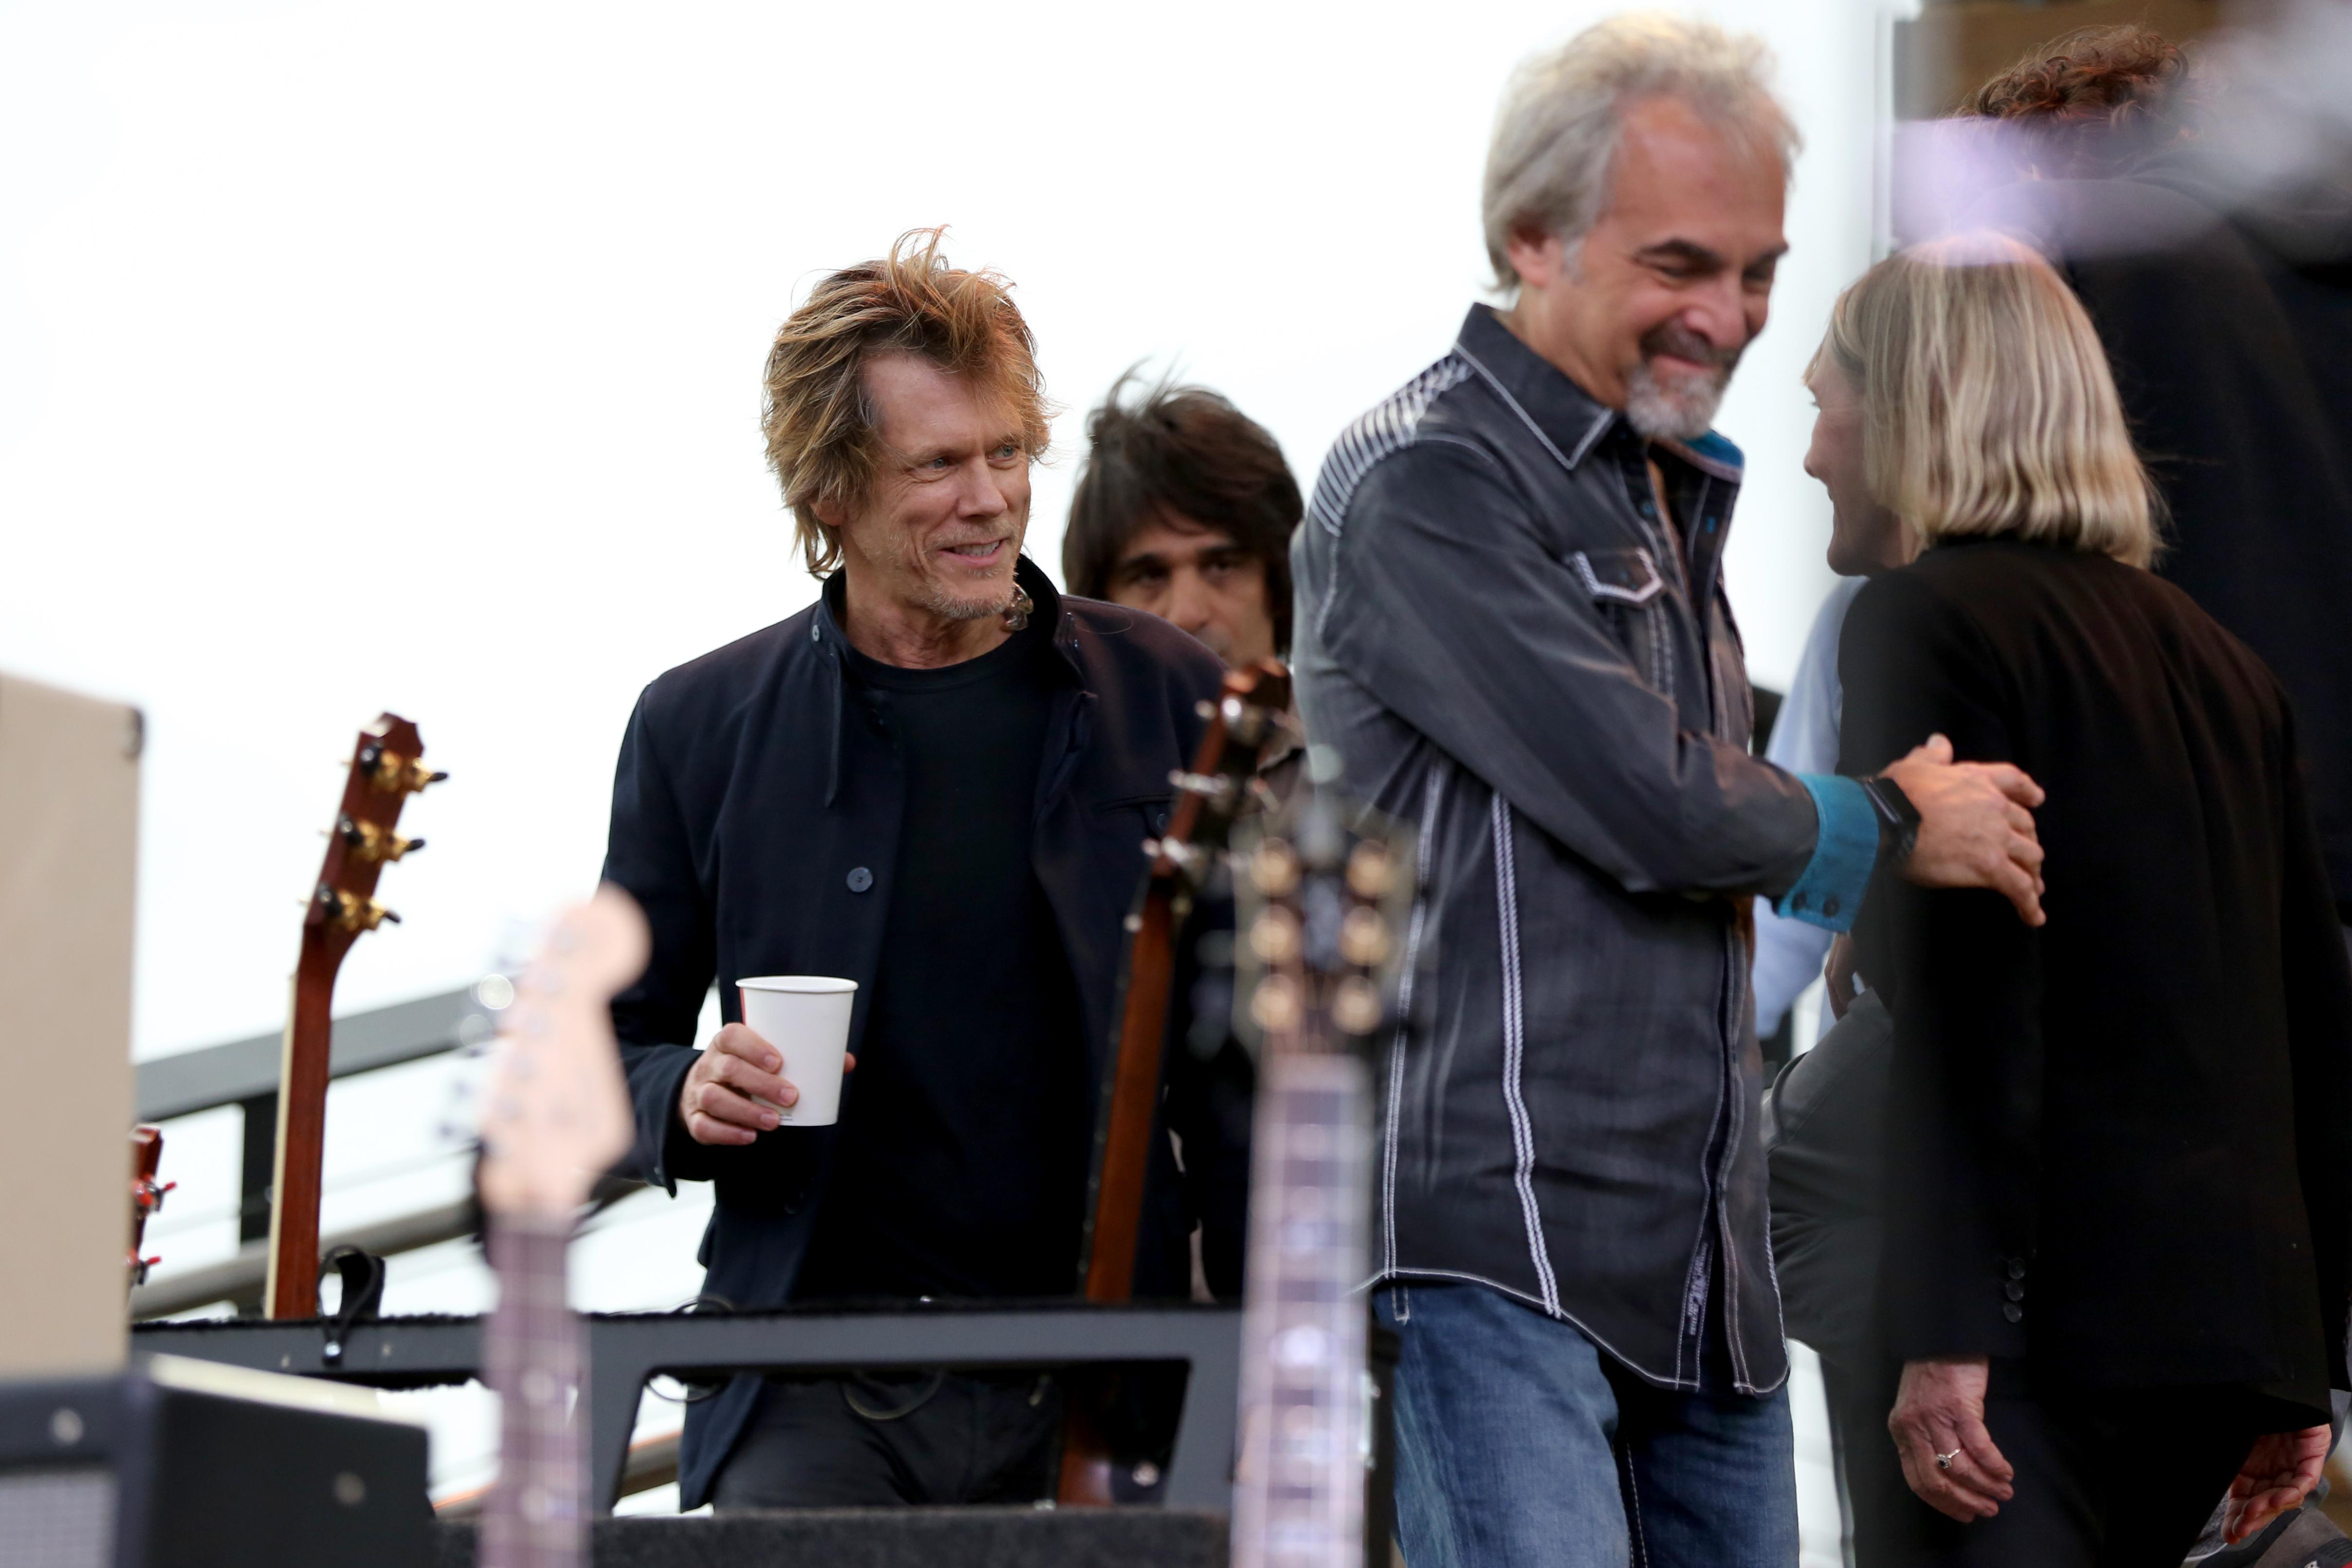 Kevin Bacon and his brother Michael  brought music to the opening of The Wharf. The Bacon Brothers band has been playing since 1995 and their sound leans towards folk rock. (Amanda Andrade-Rhoades/DC Refined)